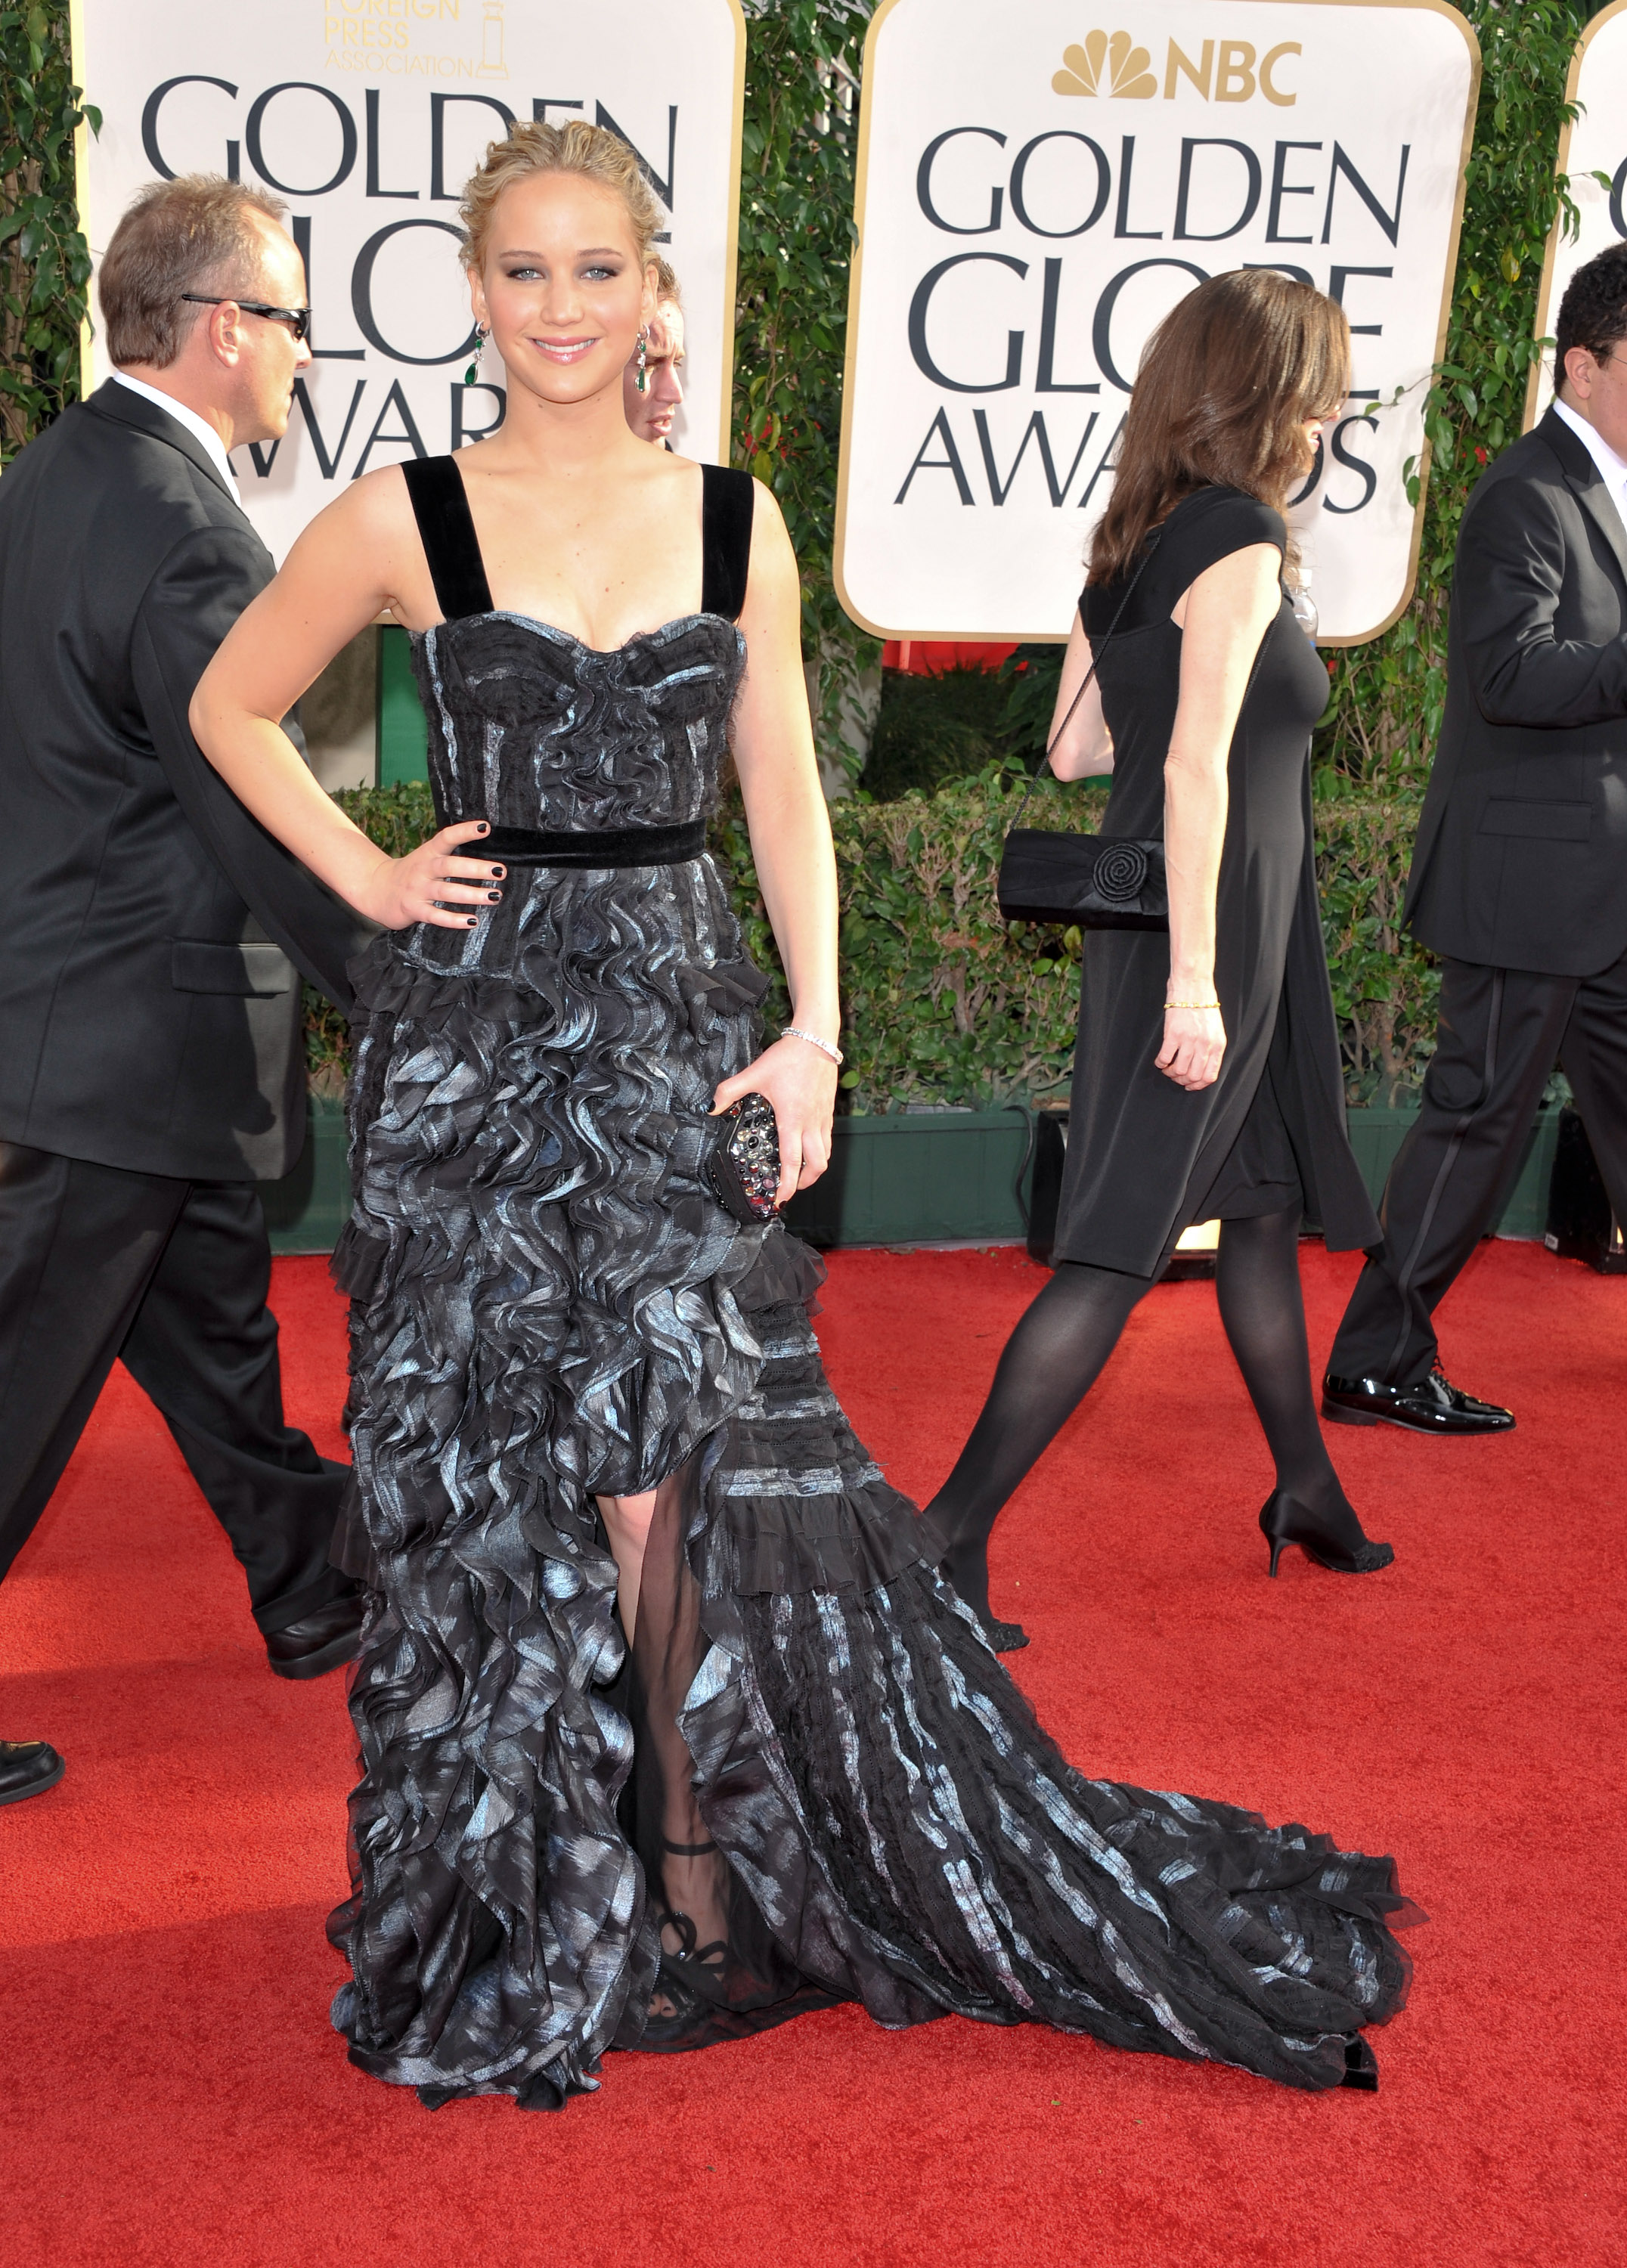 Jennifer Lawrence arrives at the 68th Annual Golden Globe Awards held on Jan. 16, 2011 in Los Angeles.